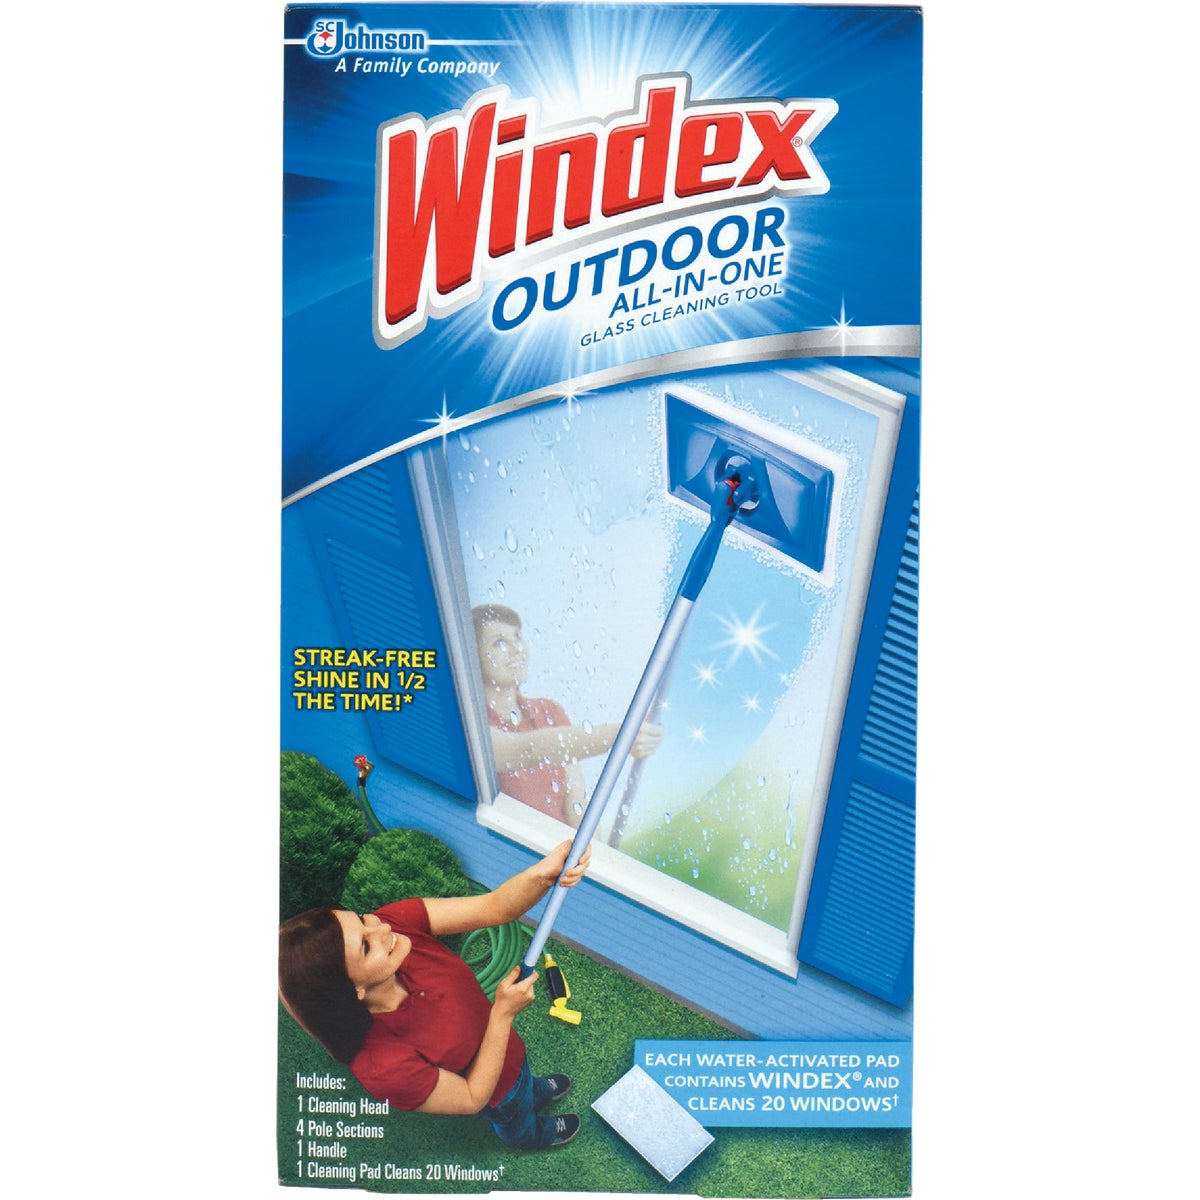 WINDEX OUTDR ALL-IN-ONE - 70117 by Sc Johnson